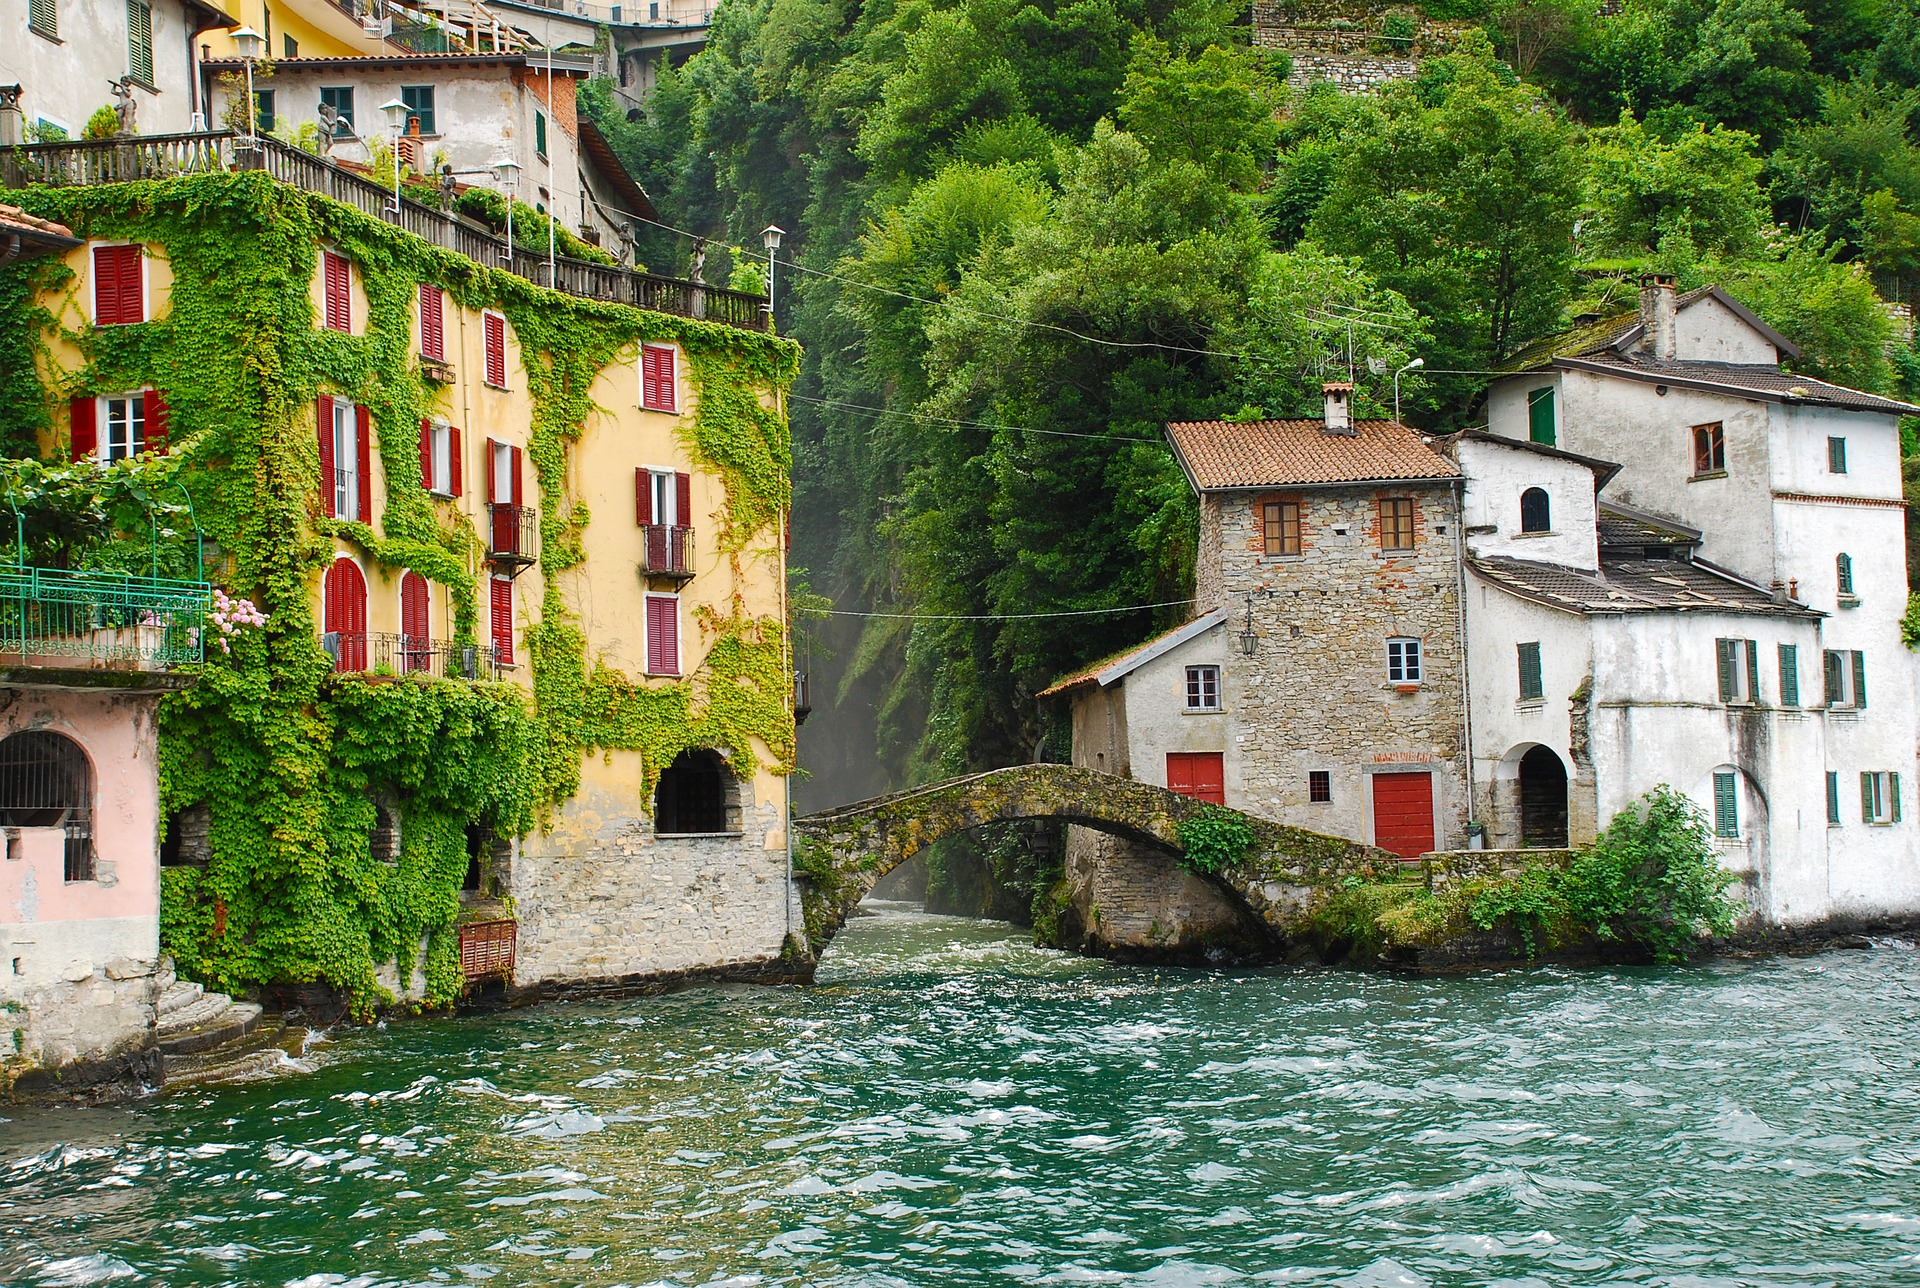 Charming view on Lake Como, in Northern Italy's Lombardy